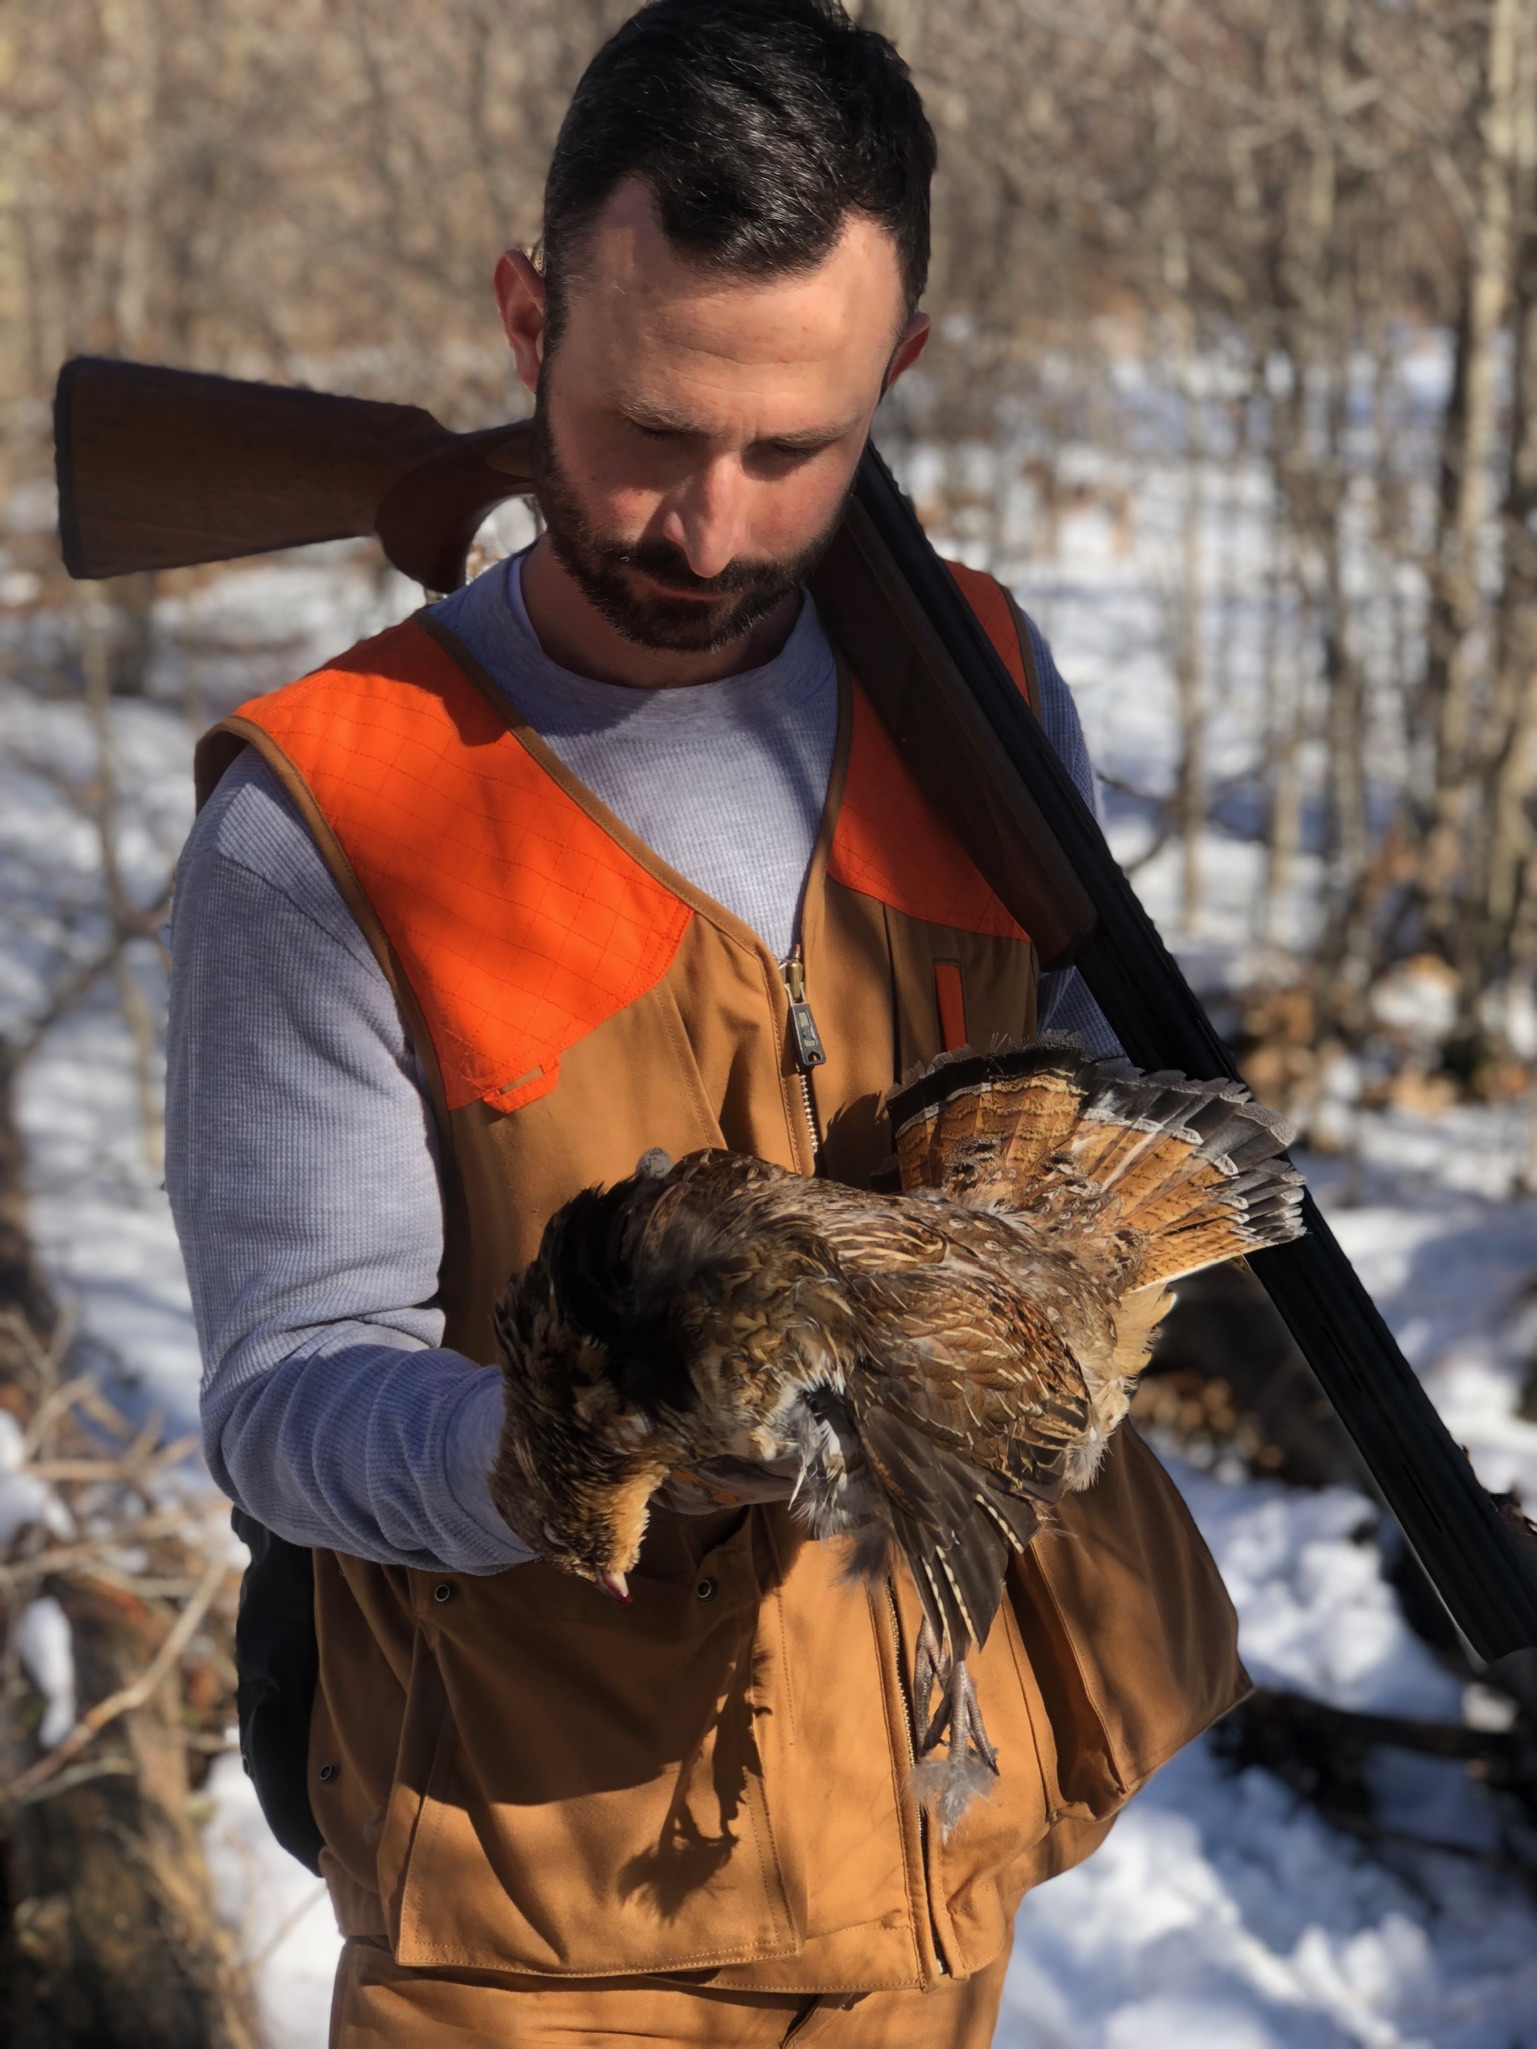 Justin with first Ruffed Grouse harvested over a pointing dog (photo credit: Cort Grubb)